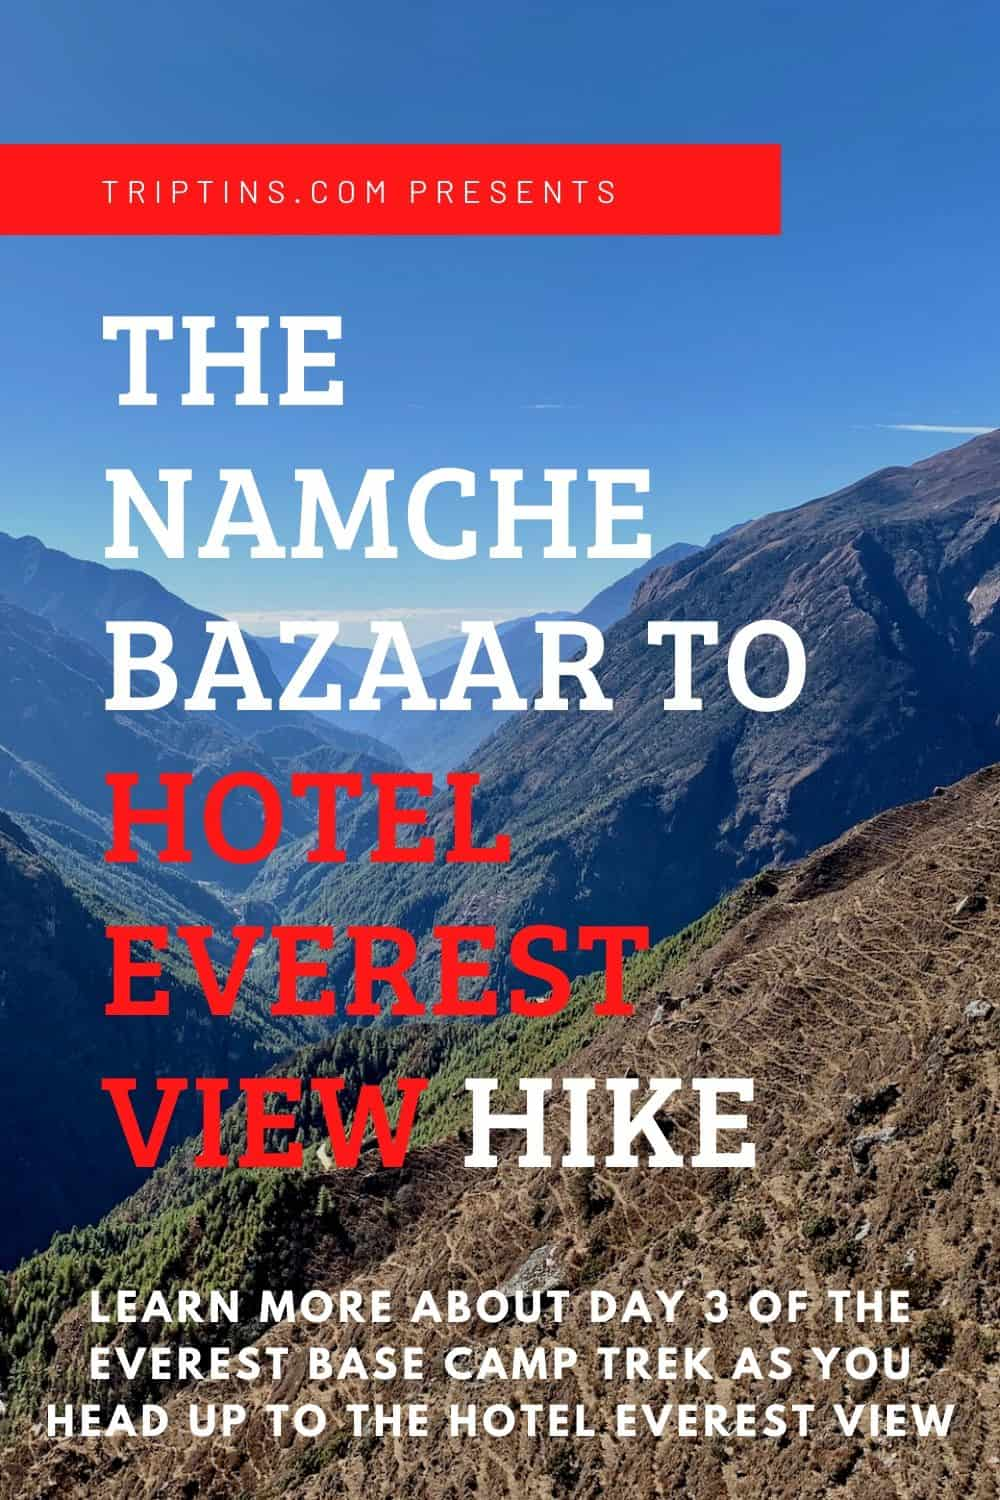 Hotel Everest View Hike